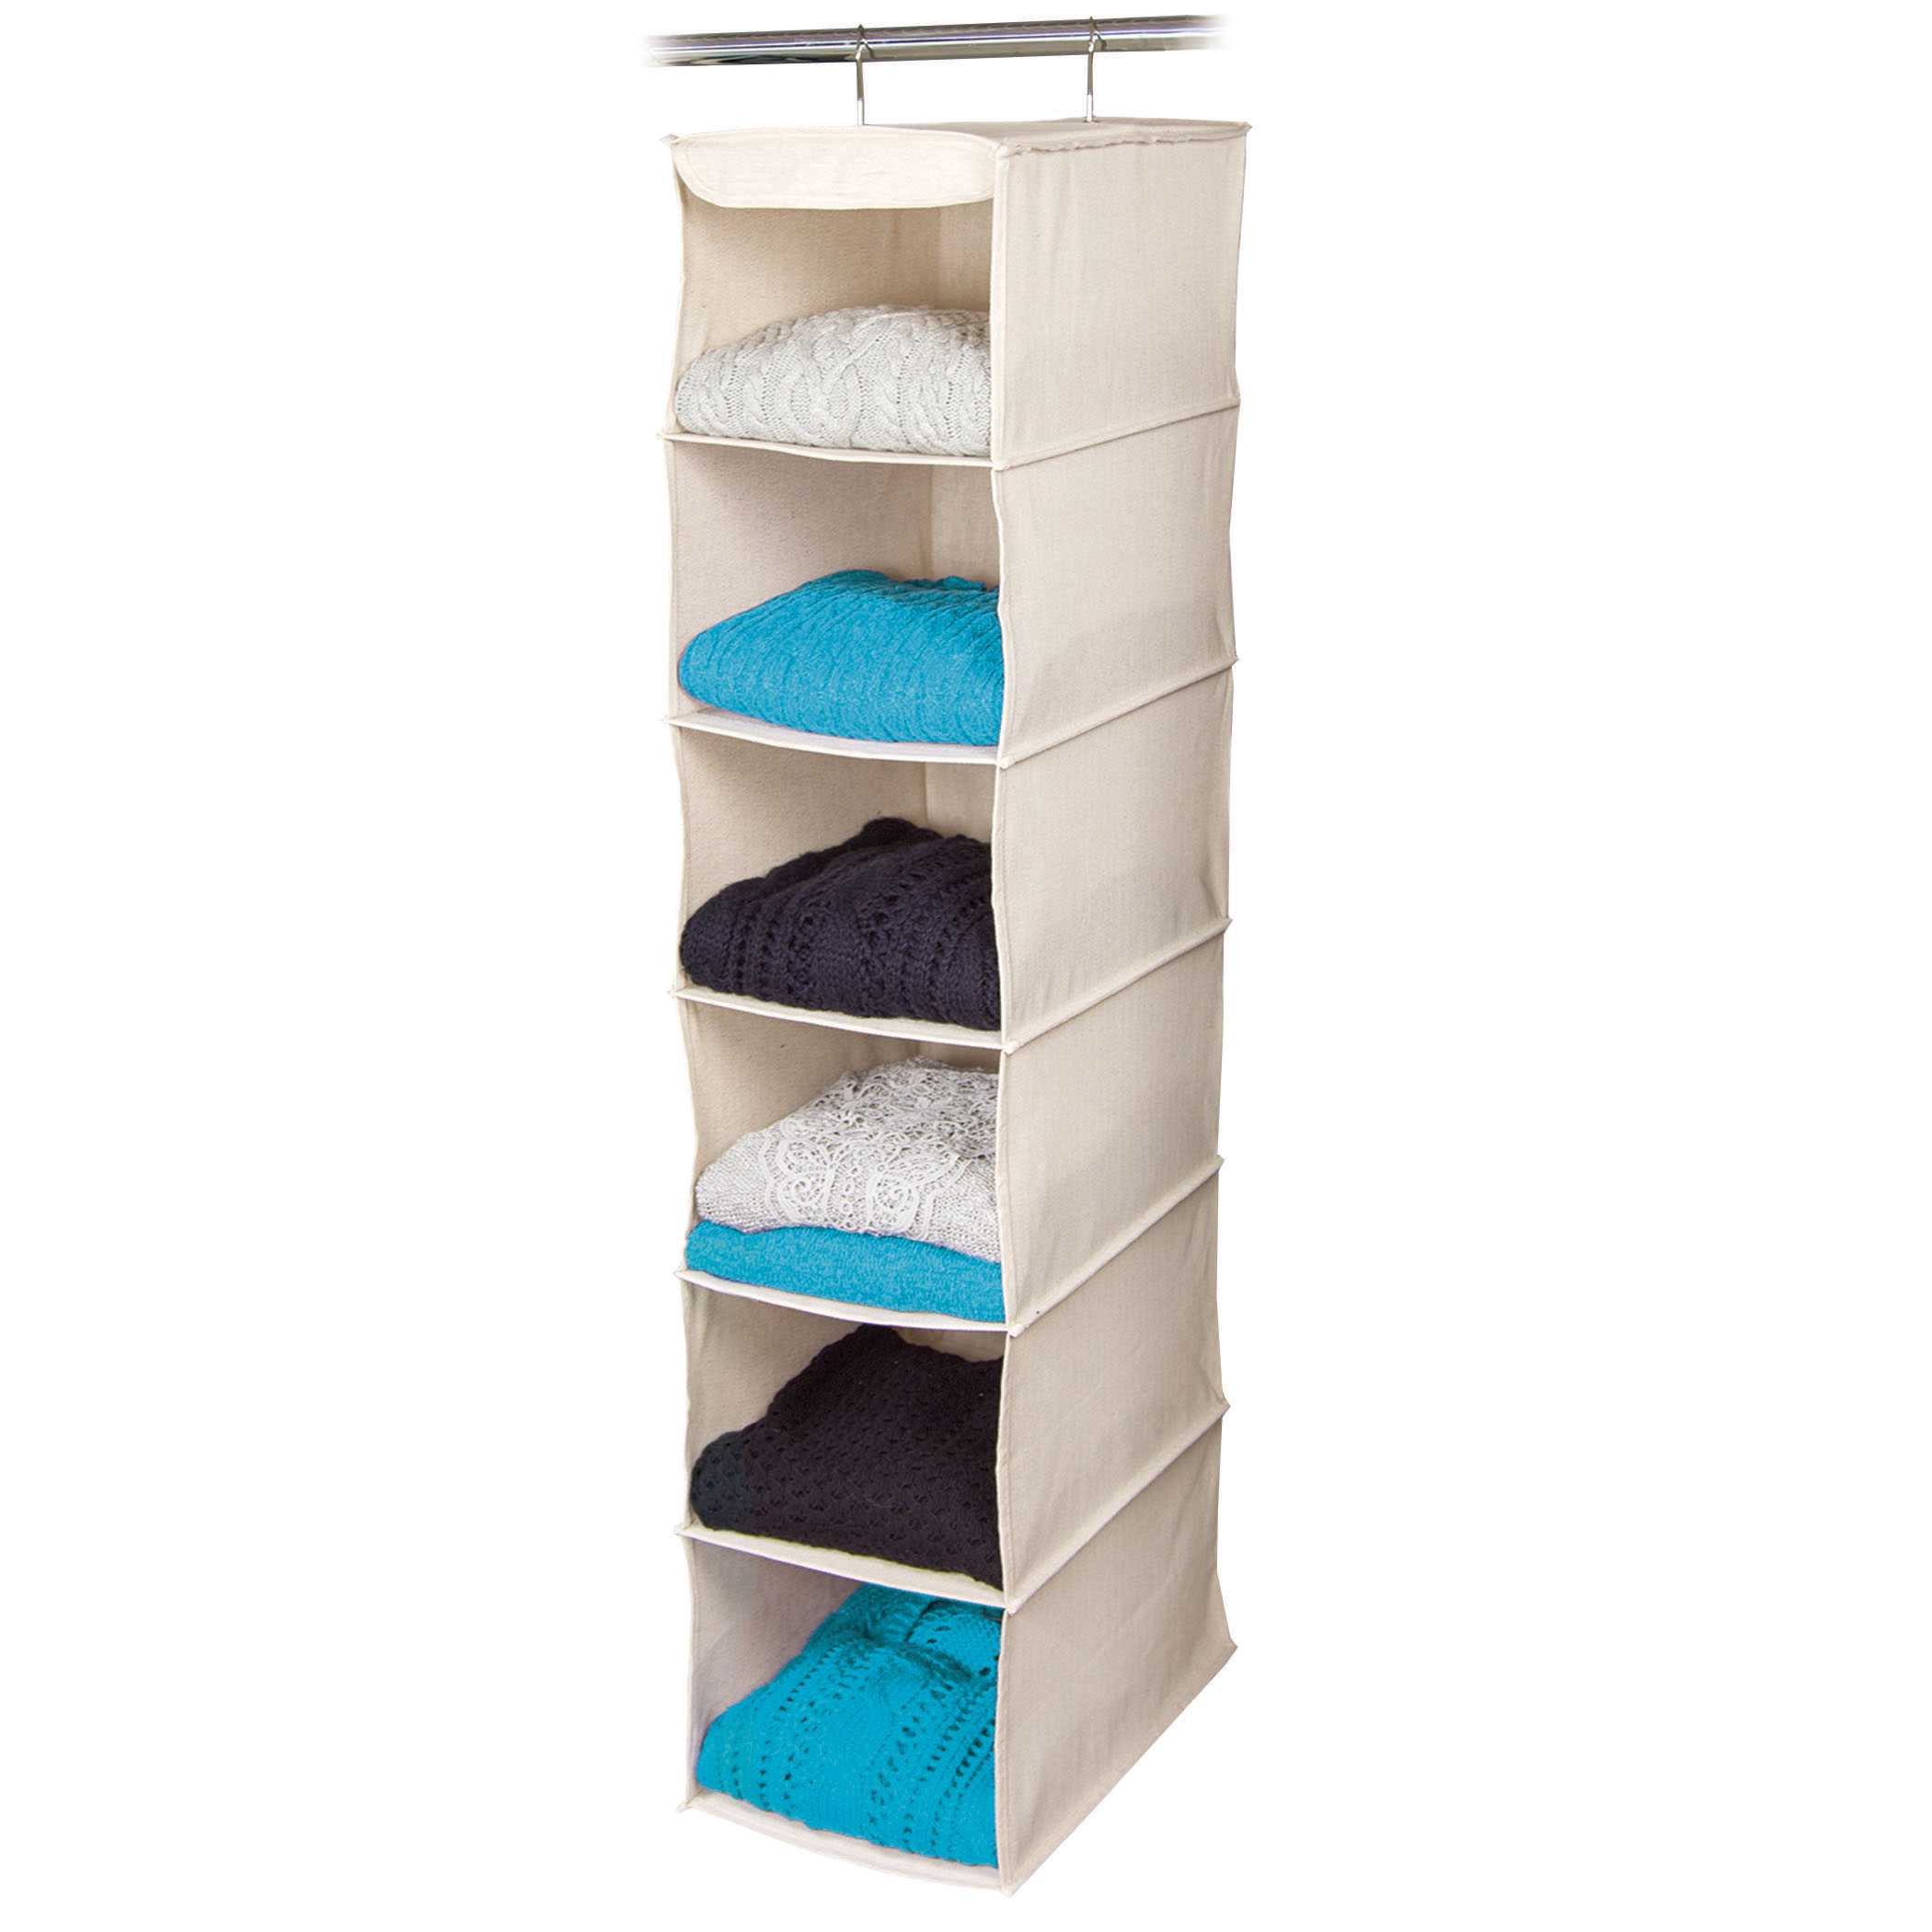 6 Shelf Sweater OrganizerItem #80841 - Features an open front, deep shelf design. Easily manage and organize your cluttered drawers.Dimensions: 10